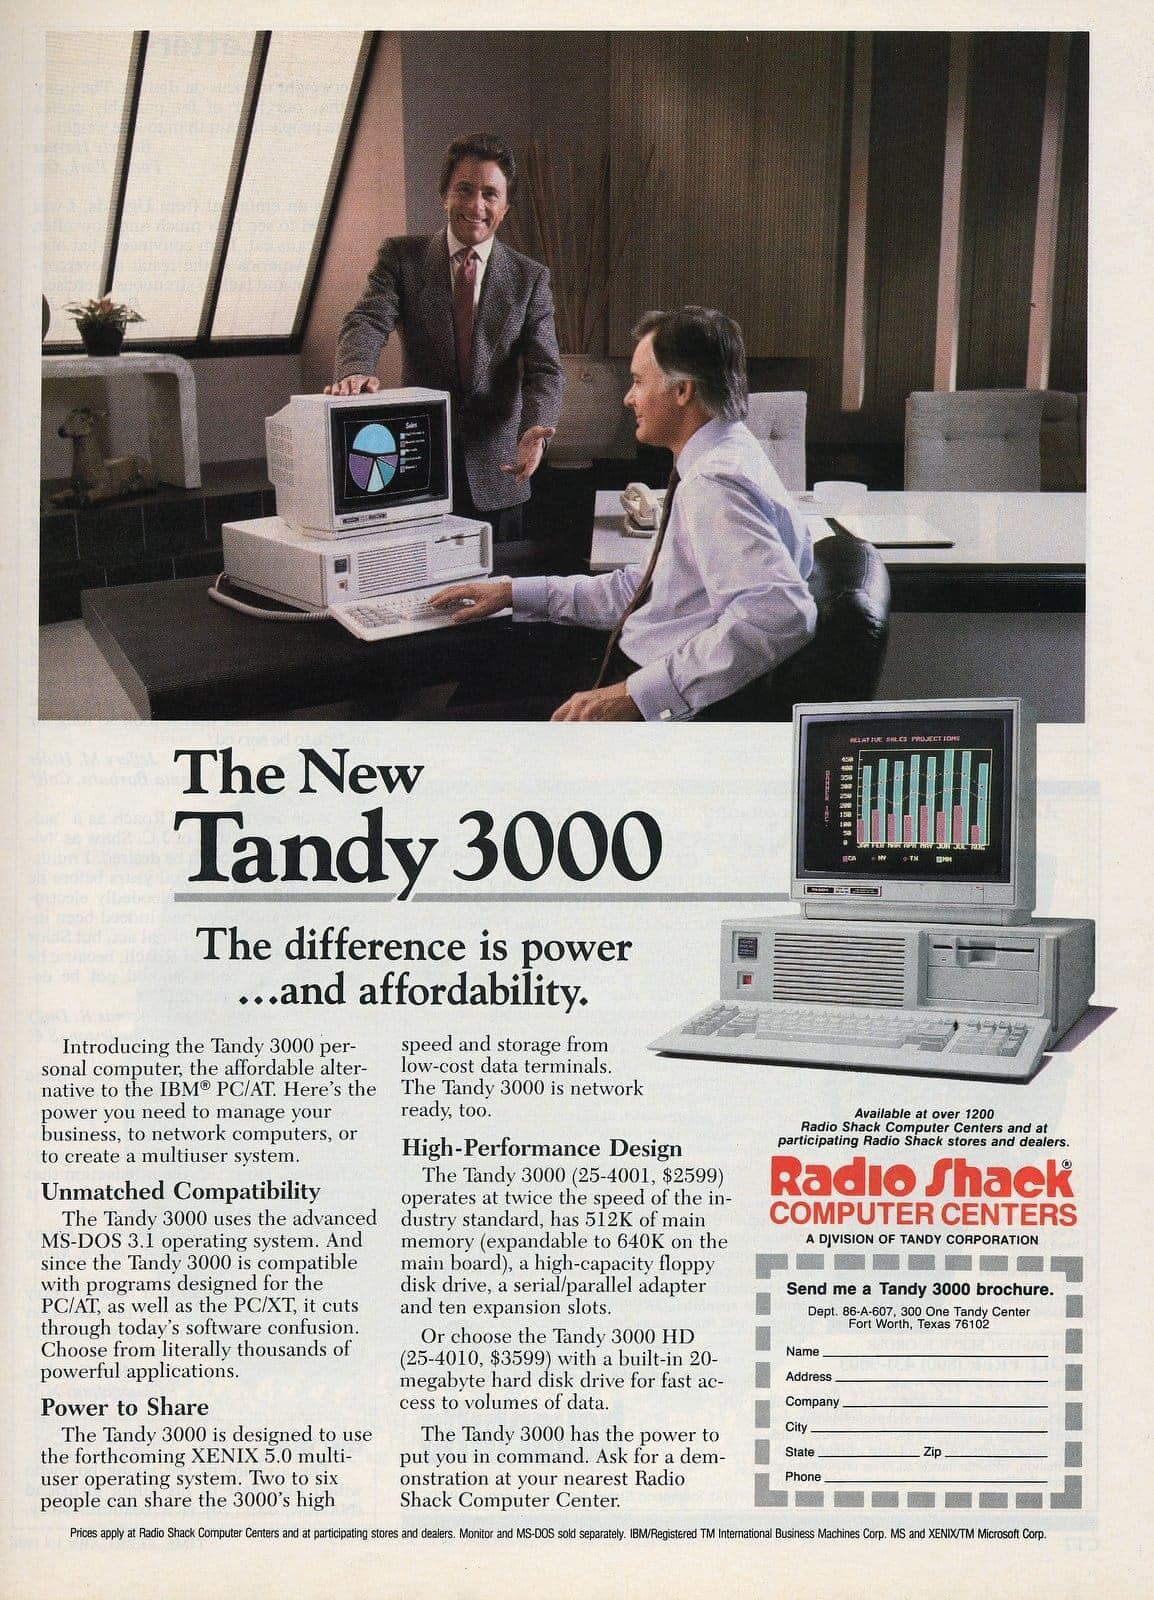 1986 Tandy 3000 personal computer from Radio Shack